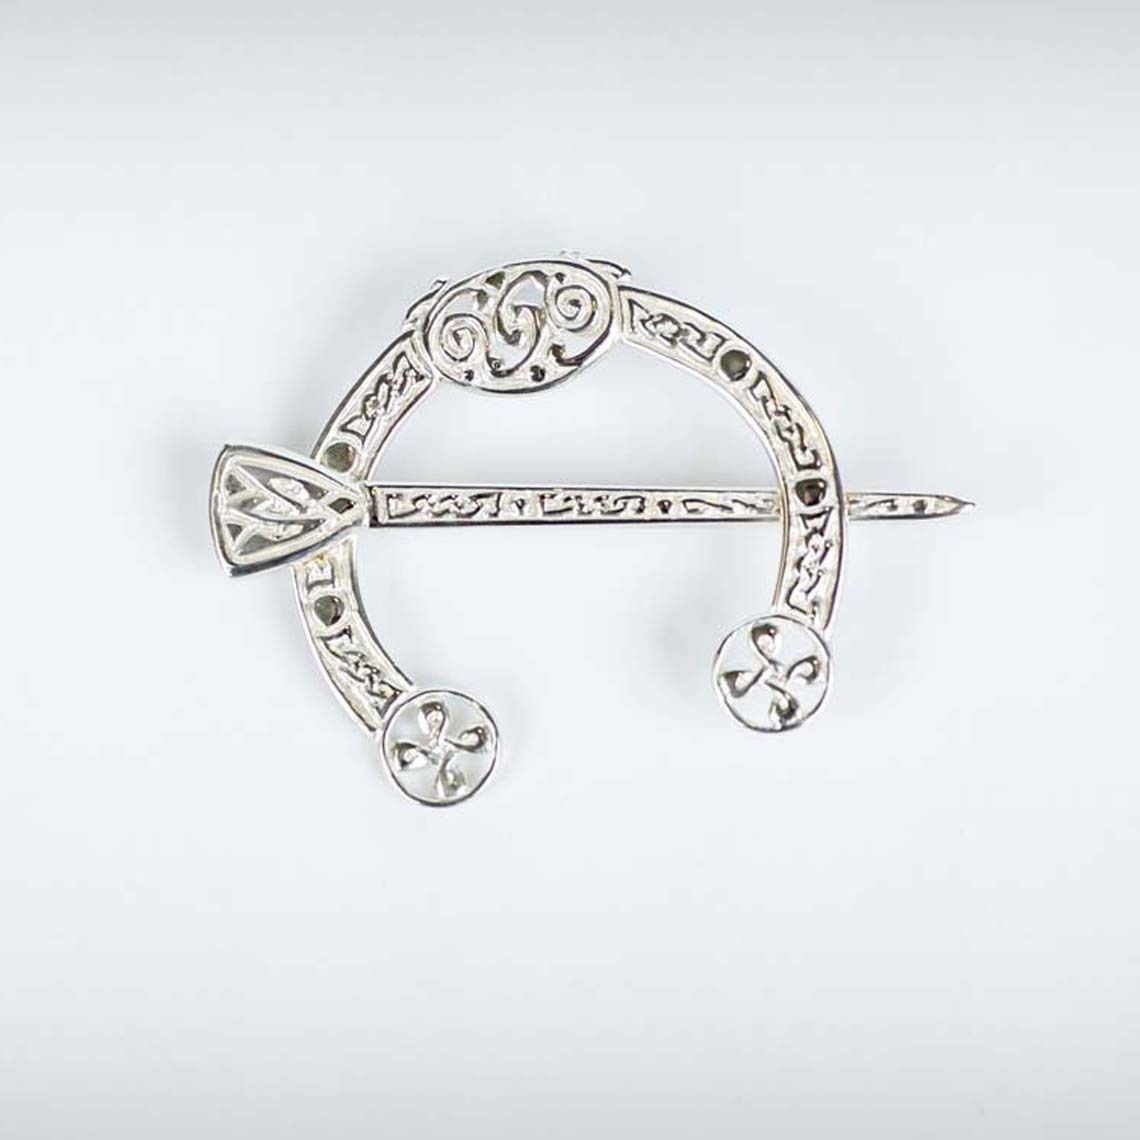 Celtic Pennanular Brooch